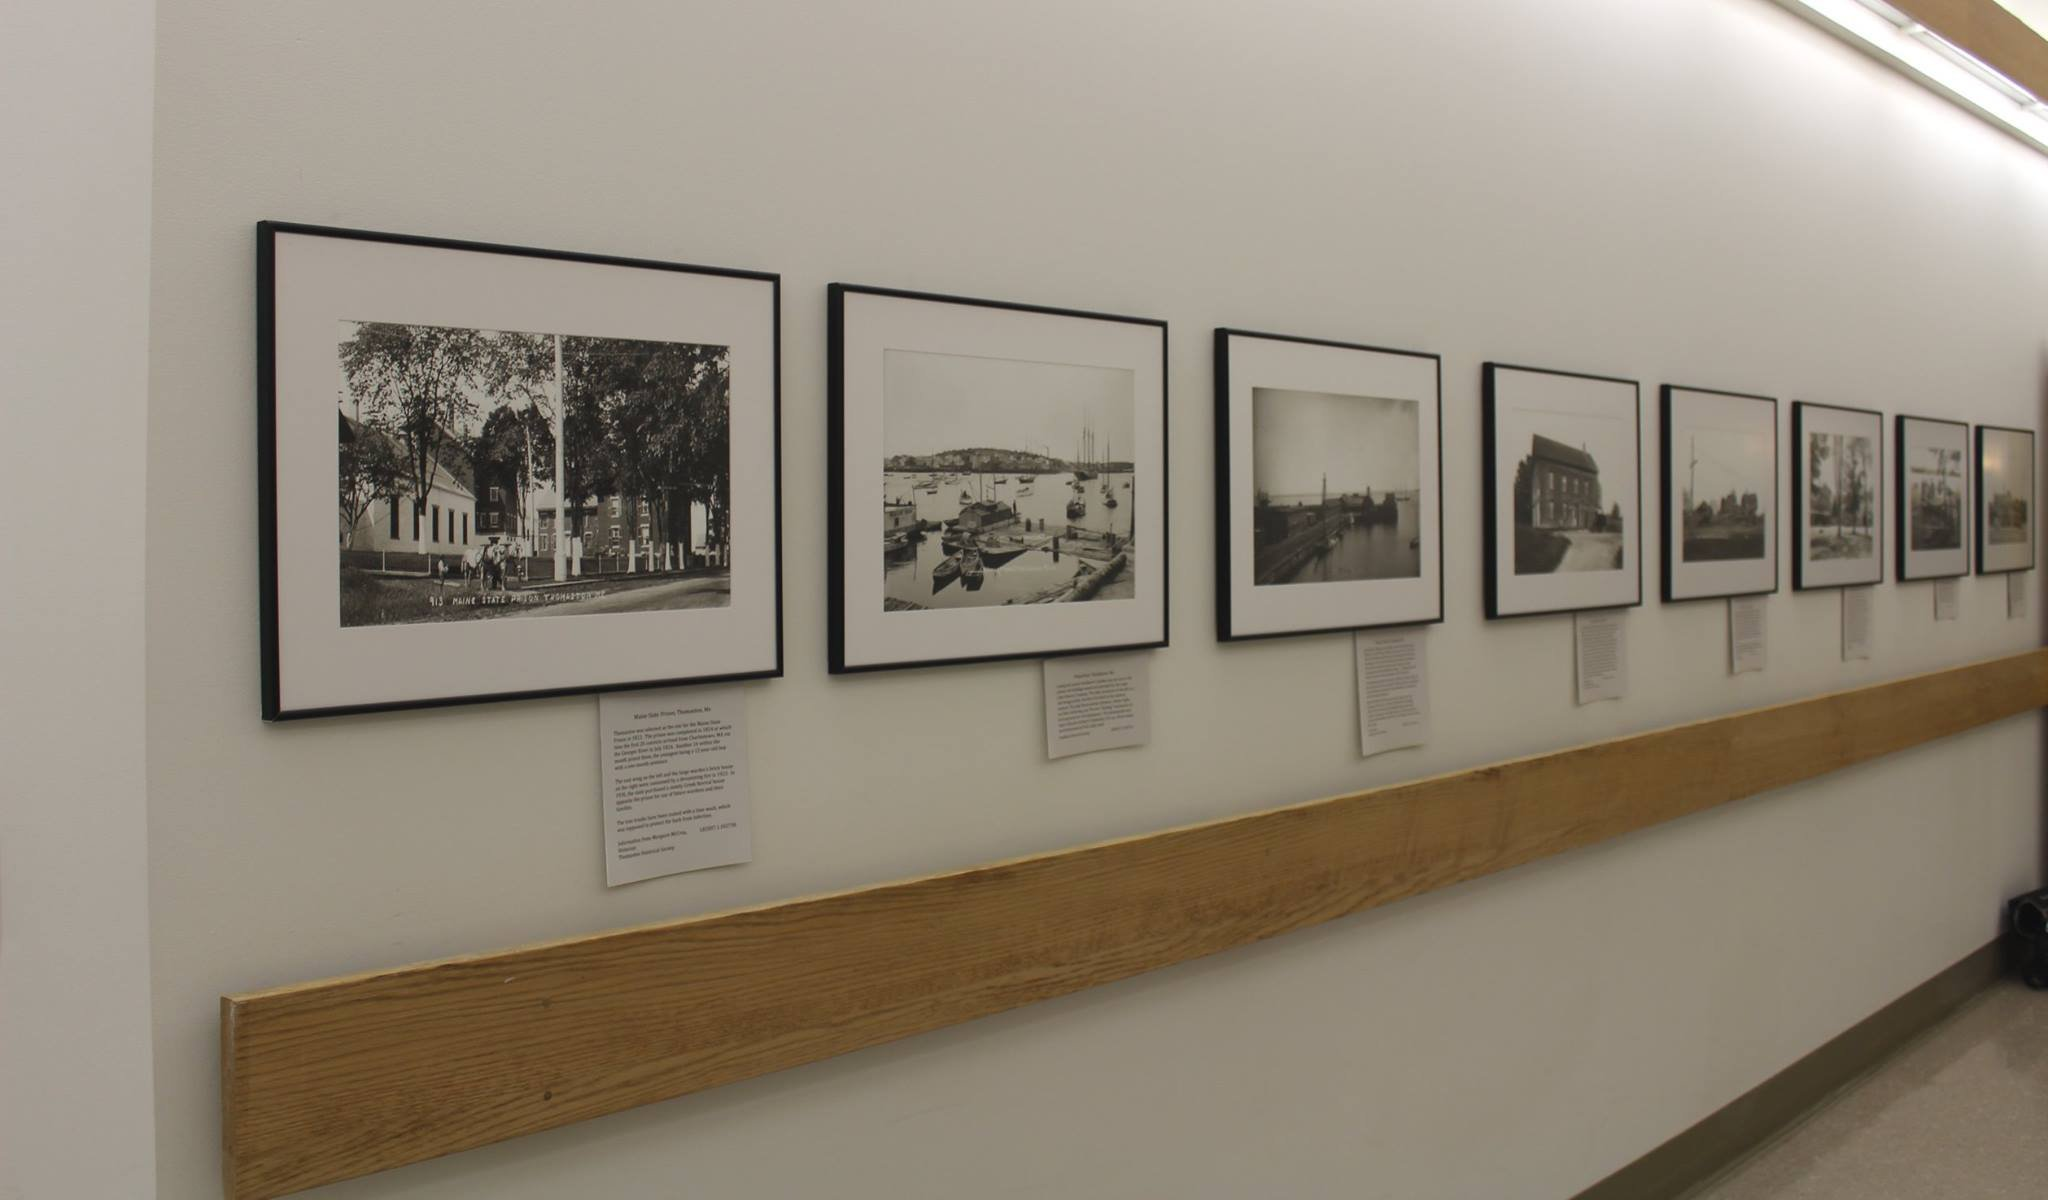 Photo display at the Penobscot Marine Museum